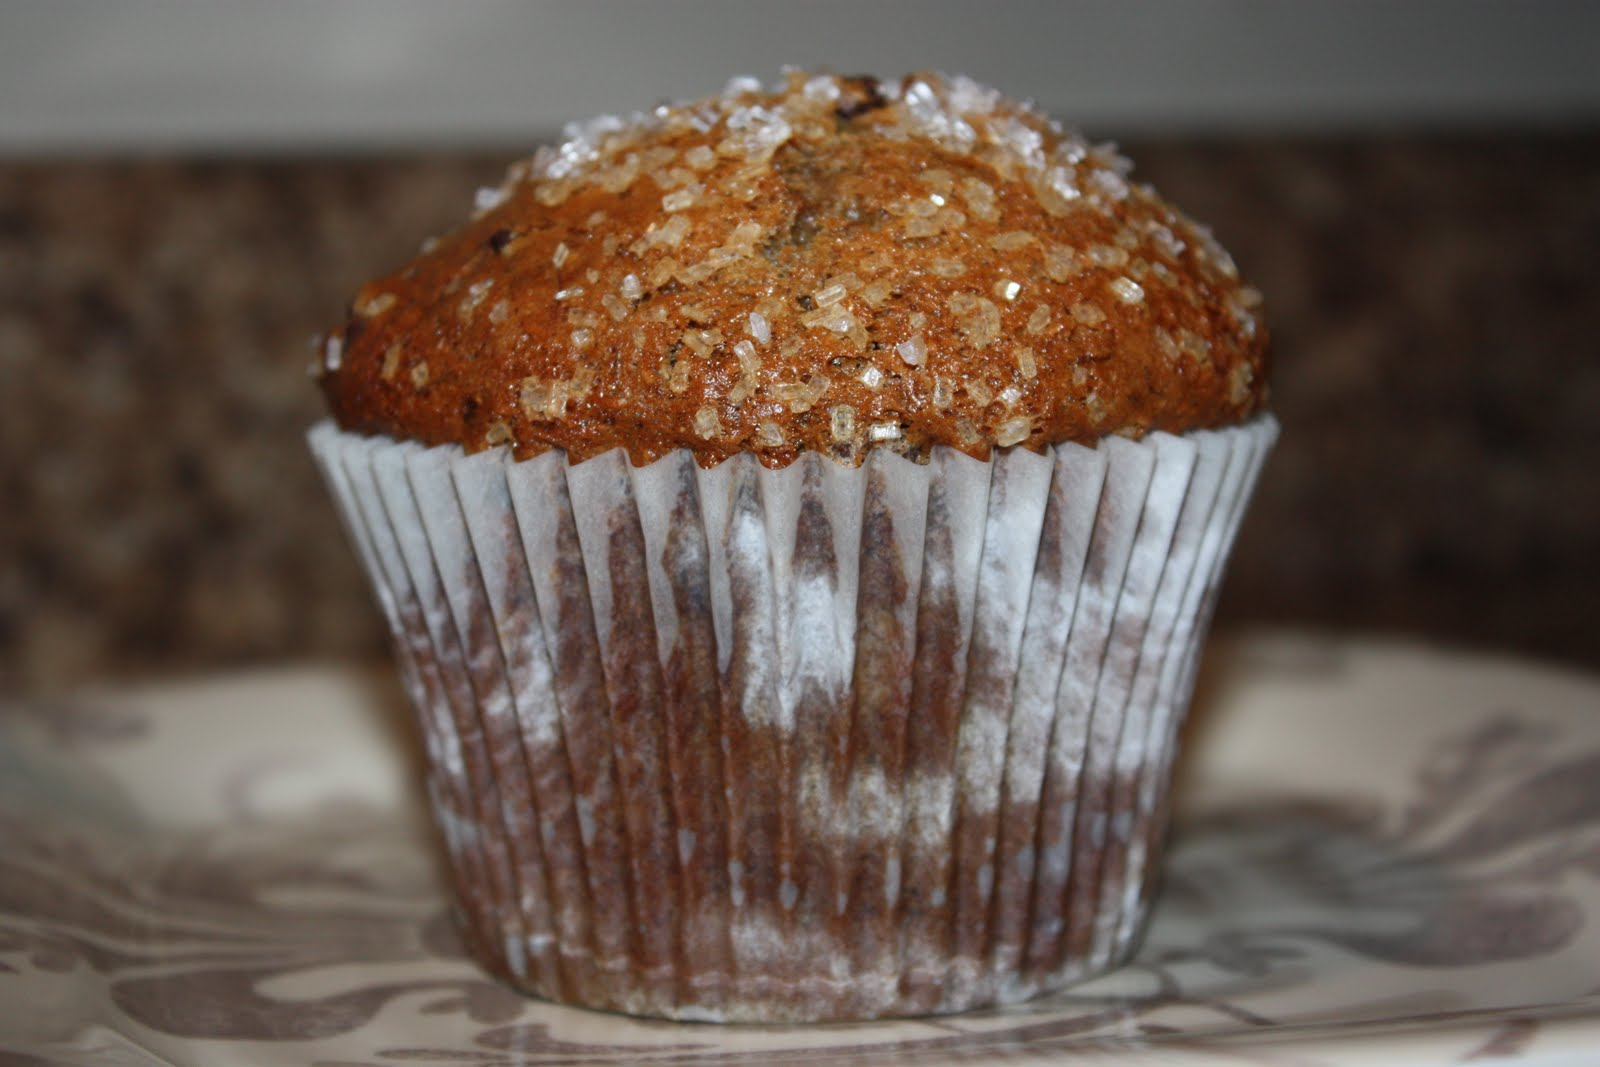 The Farmer's Wife: Jumbo Roasted Banana Muffins